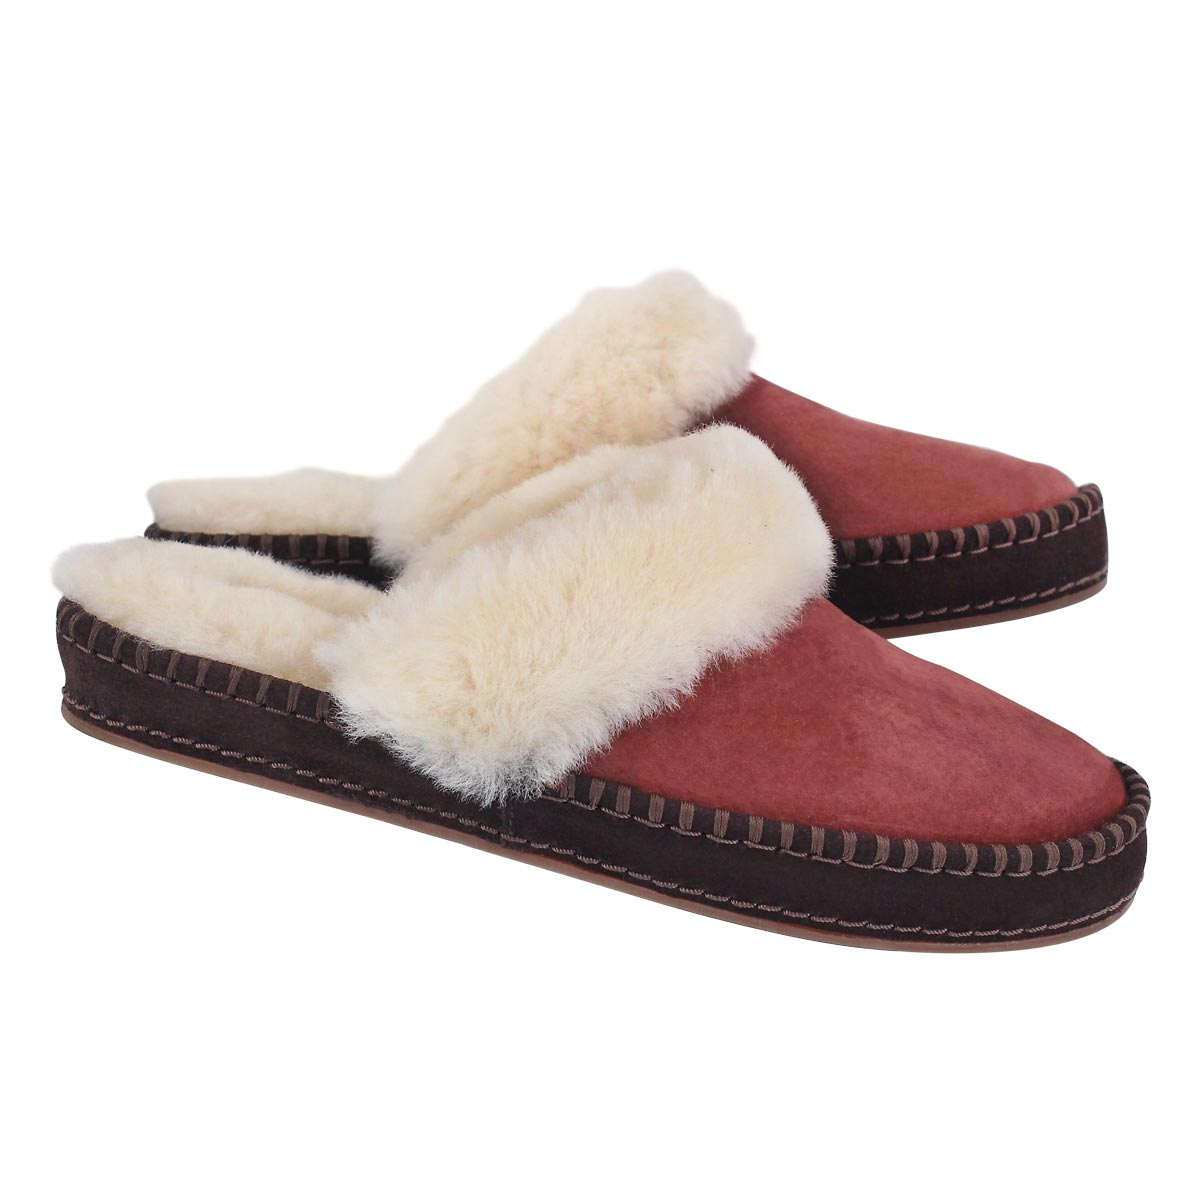 Lds Aira red clay slipper